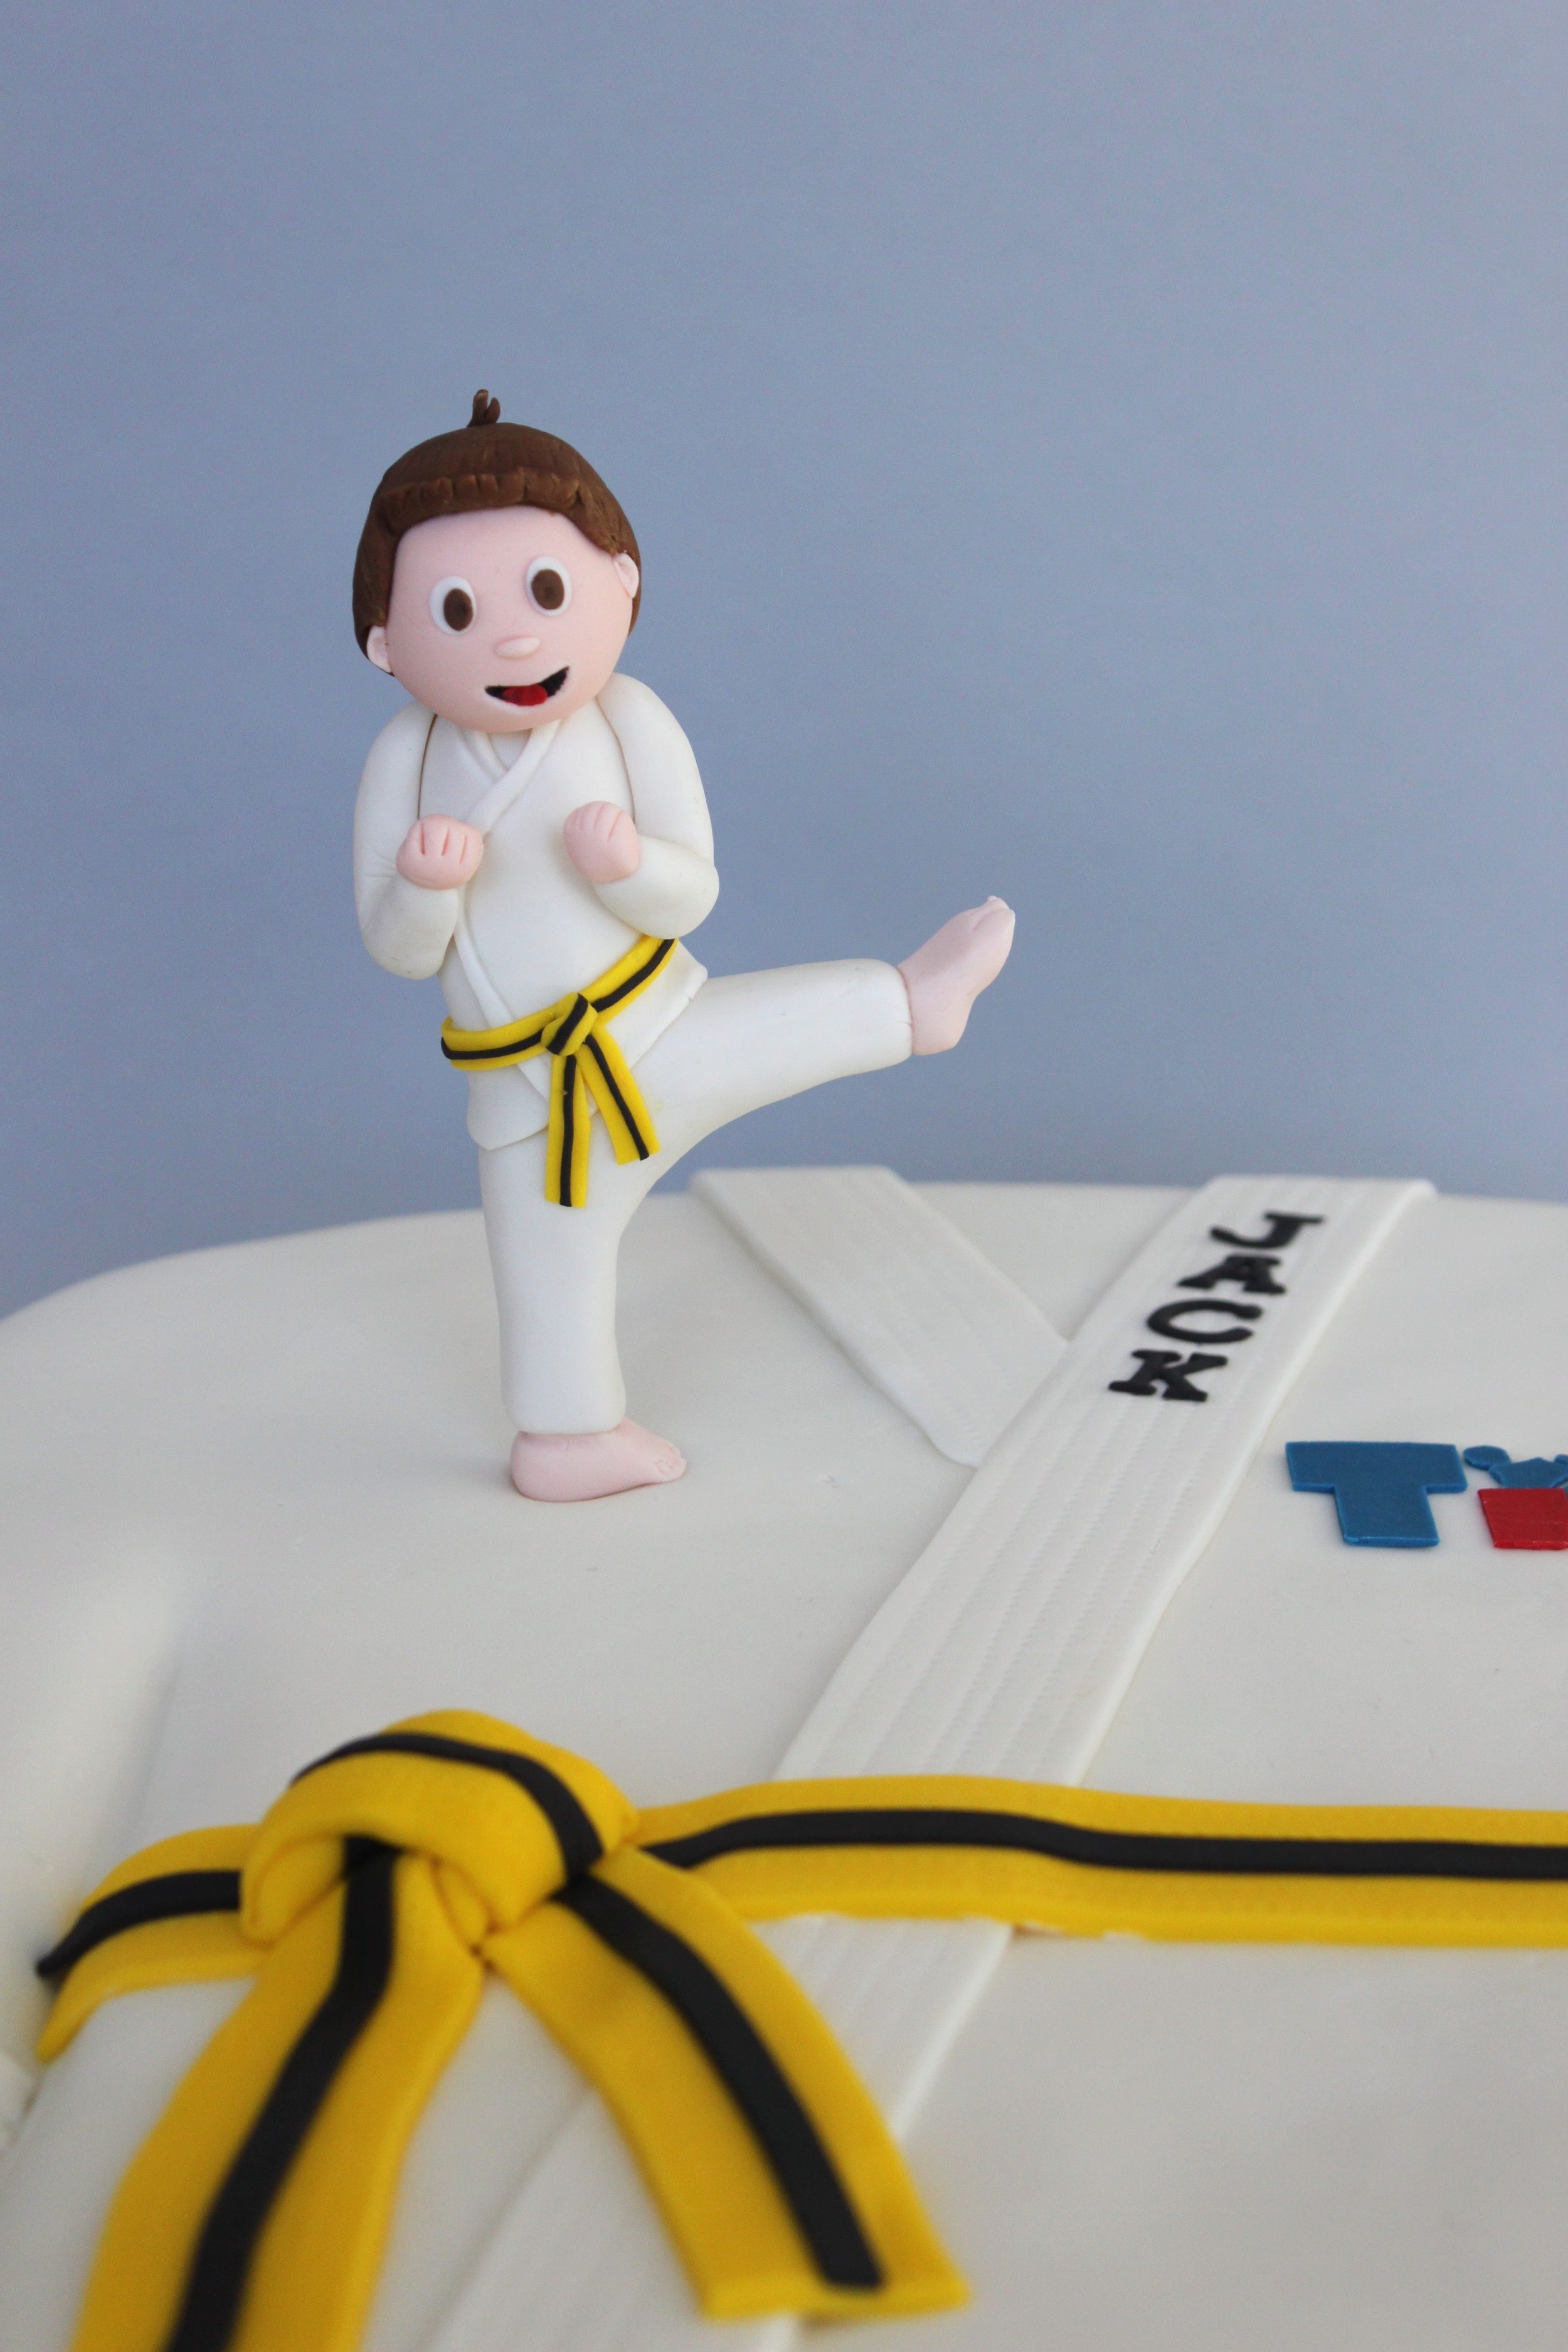 Tae kwon do cake topper 7628.jpg